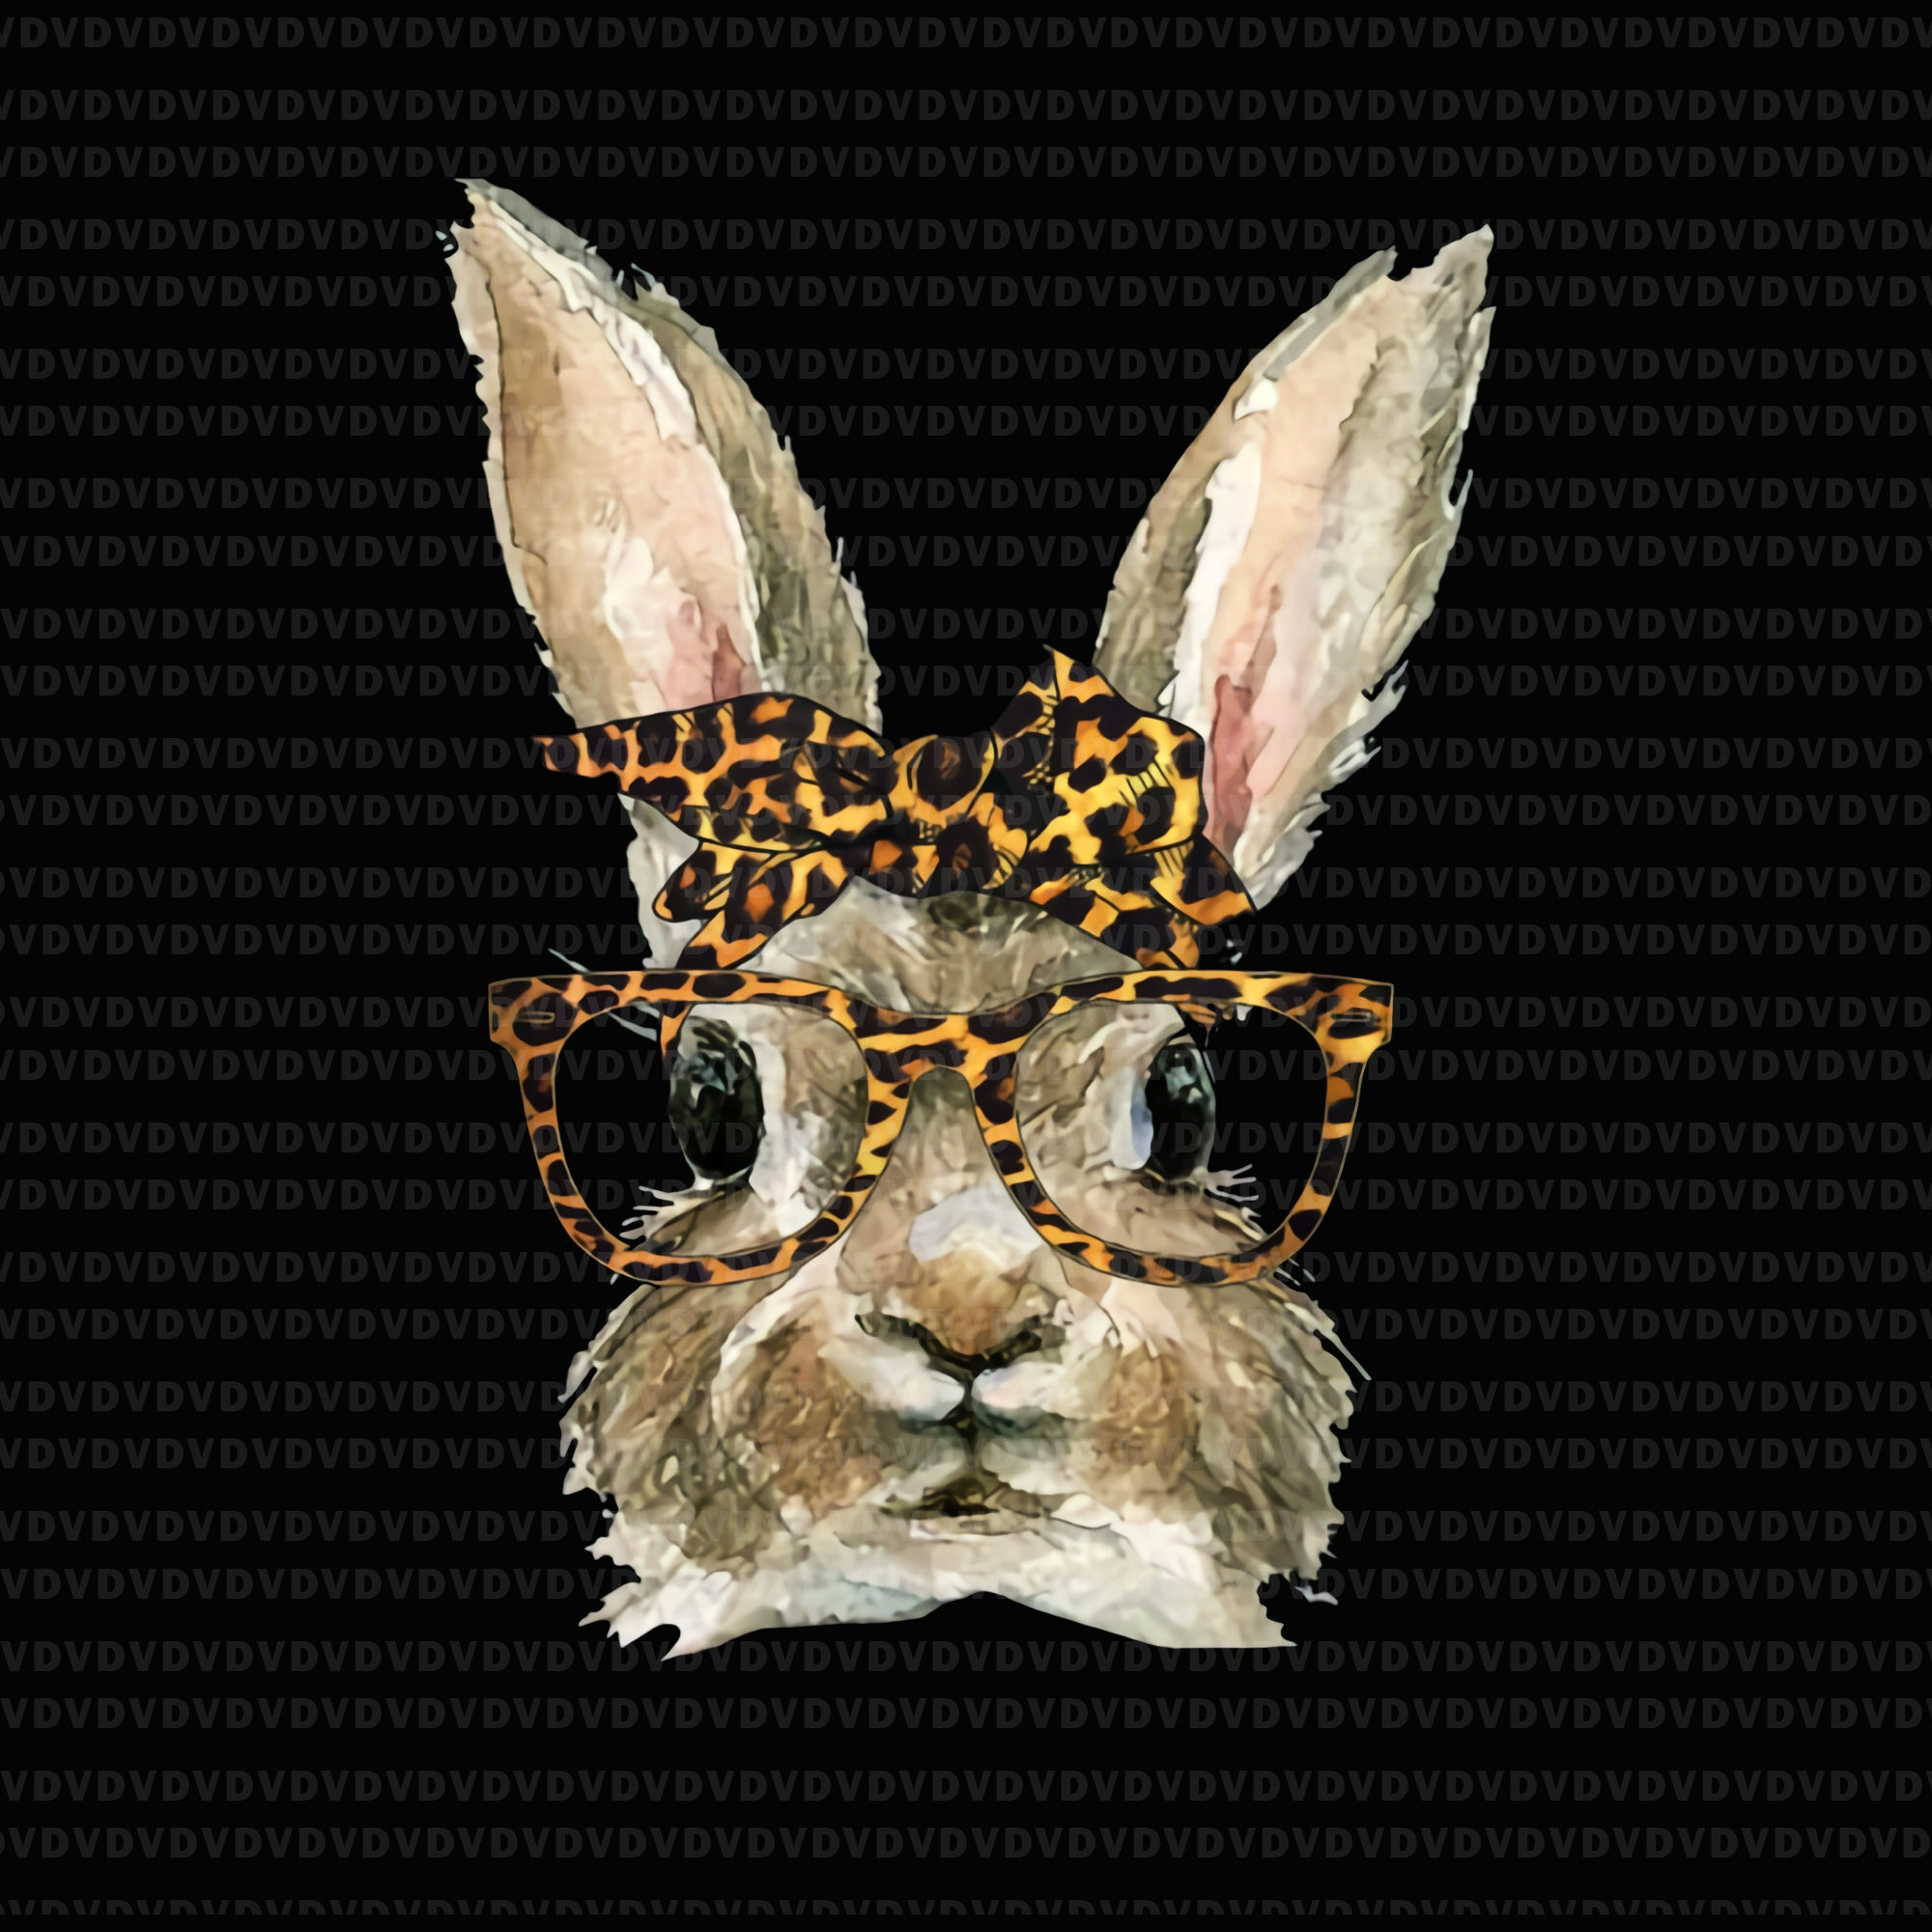 Bunny rabbit png, bunny rabbit vector, bunny rabbit glasses leopard print bow funny hipster easter png, bunny rabbit